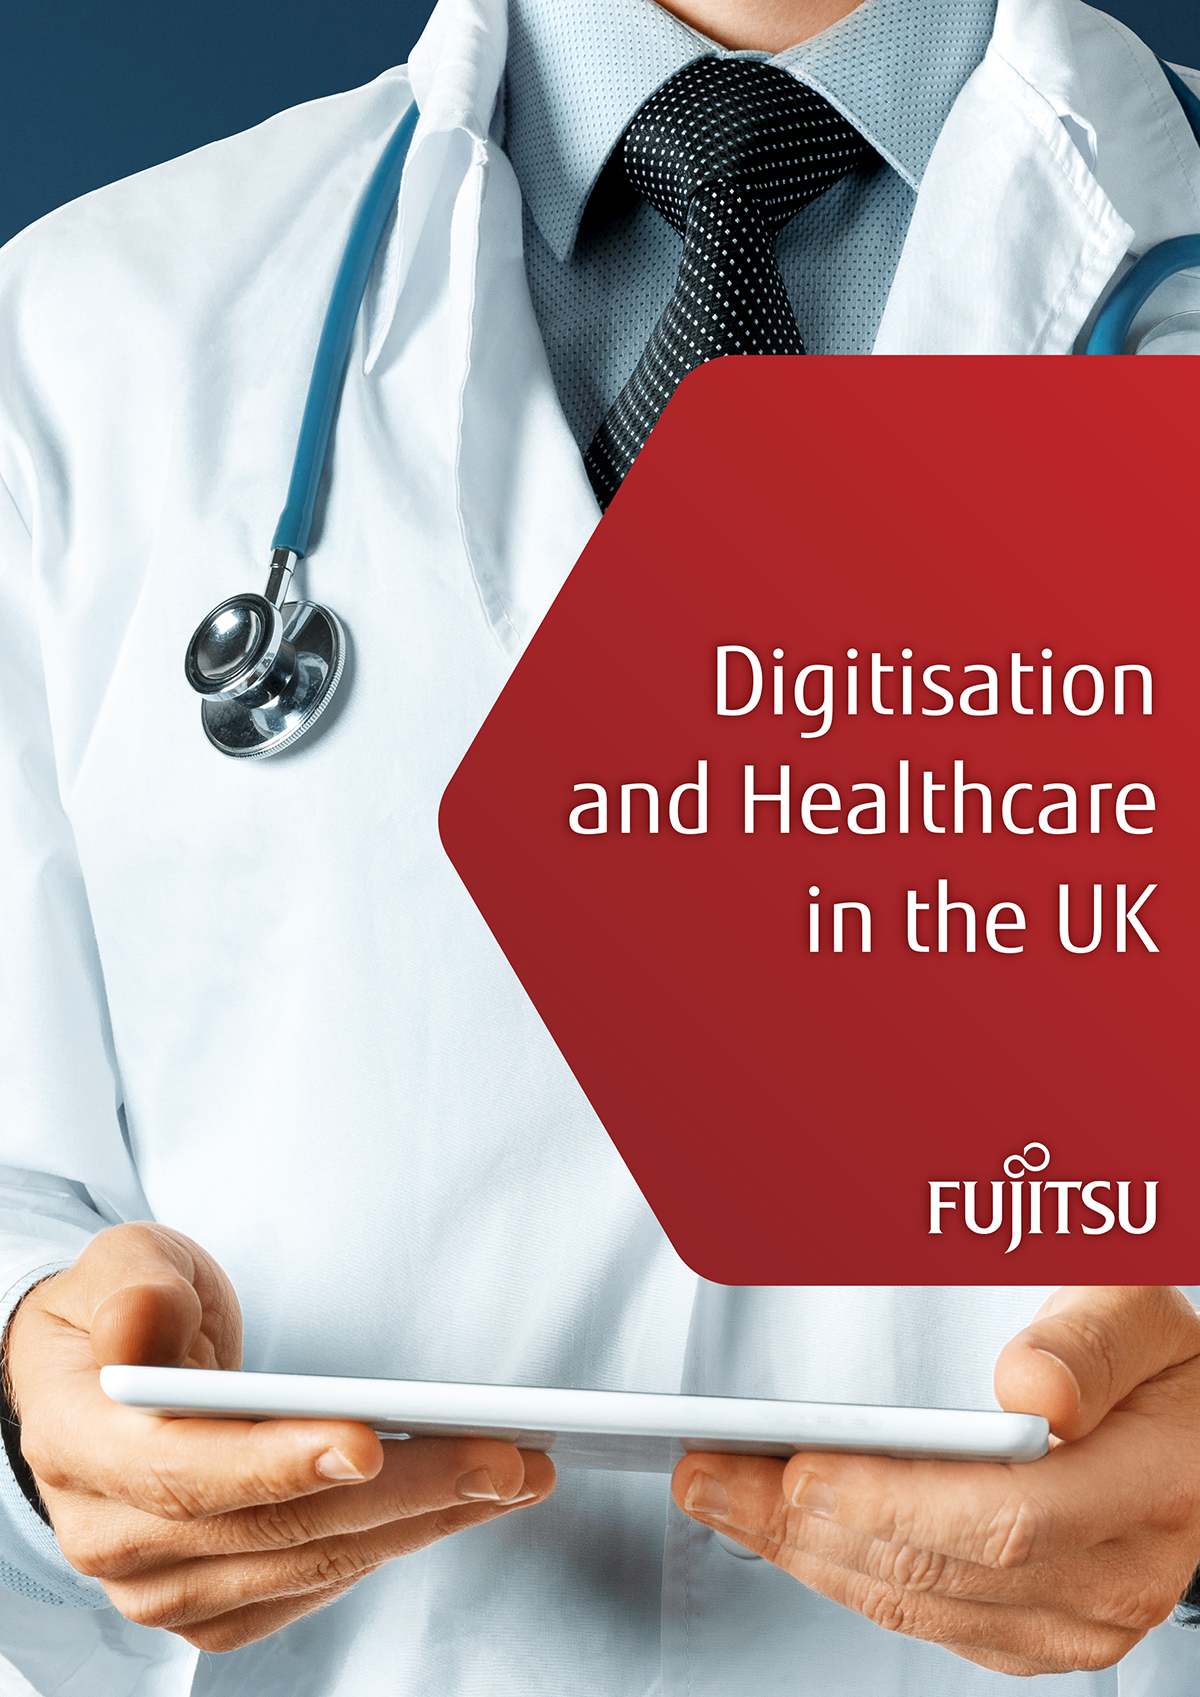 Digitisation and Healthcare in the UK, fujitsu